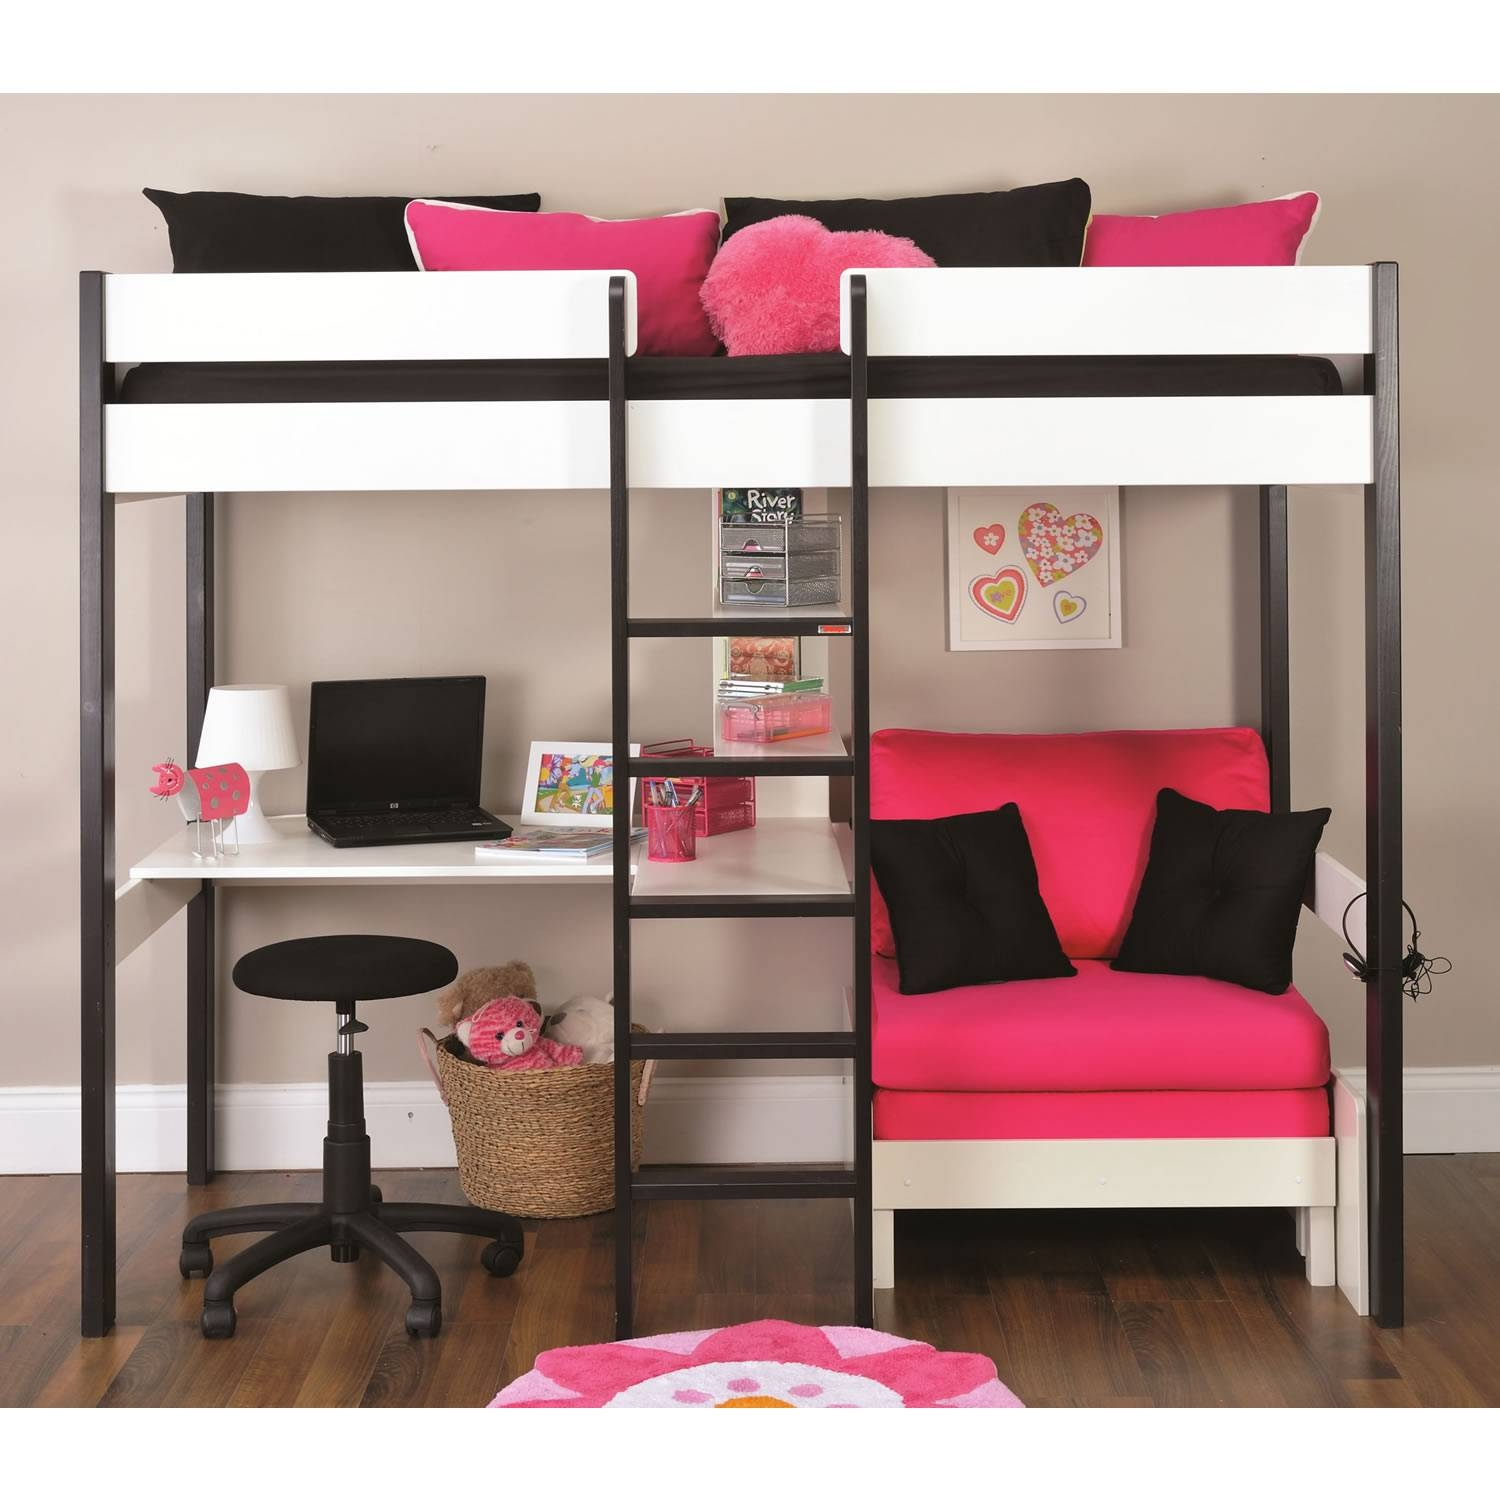 High Sleeper With Desk And Sofa Bed - Ansugallery within High Sleeper With Desk and Sofa (Image 15 of 30)